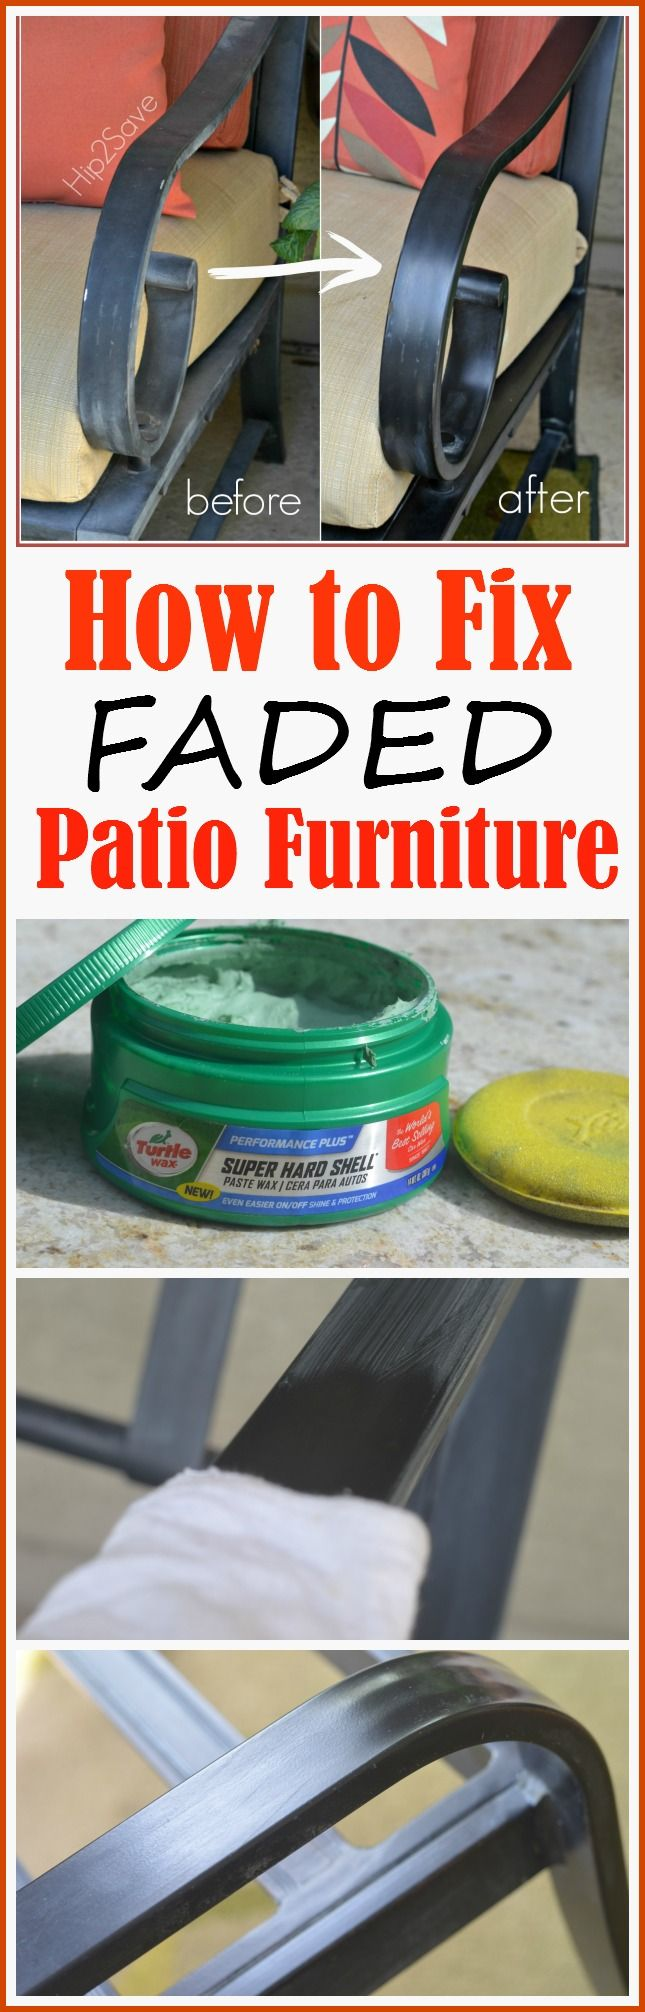 Are you looking for a way to bring back the shine and lustre on your faded aluminum patio furniture. Here's a simple ingredient that will make that a breeze.